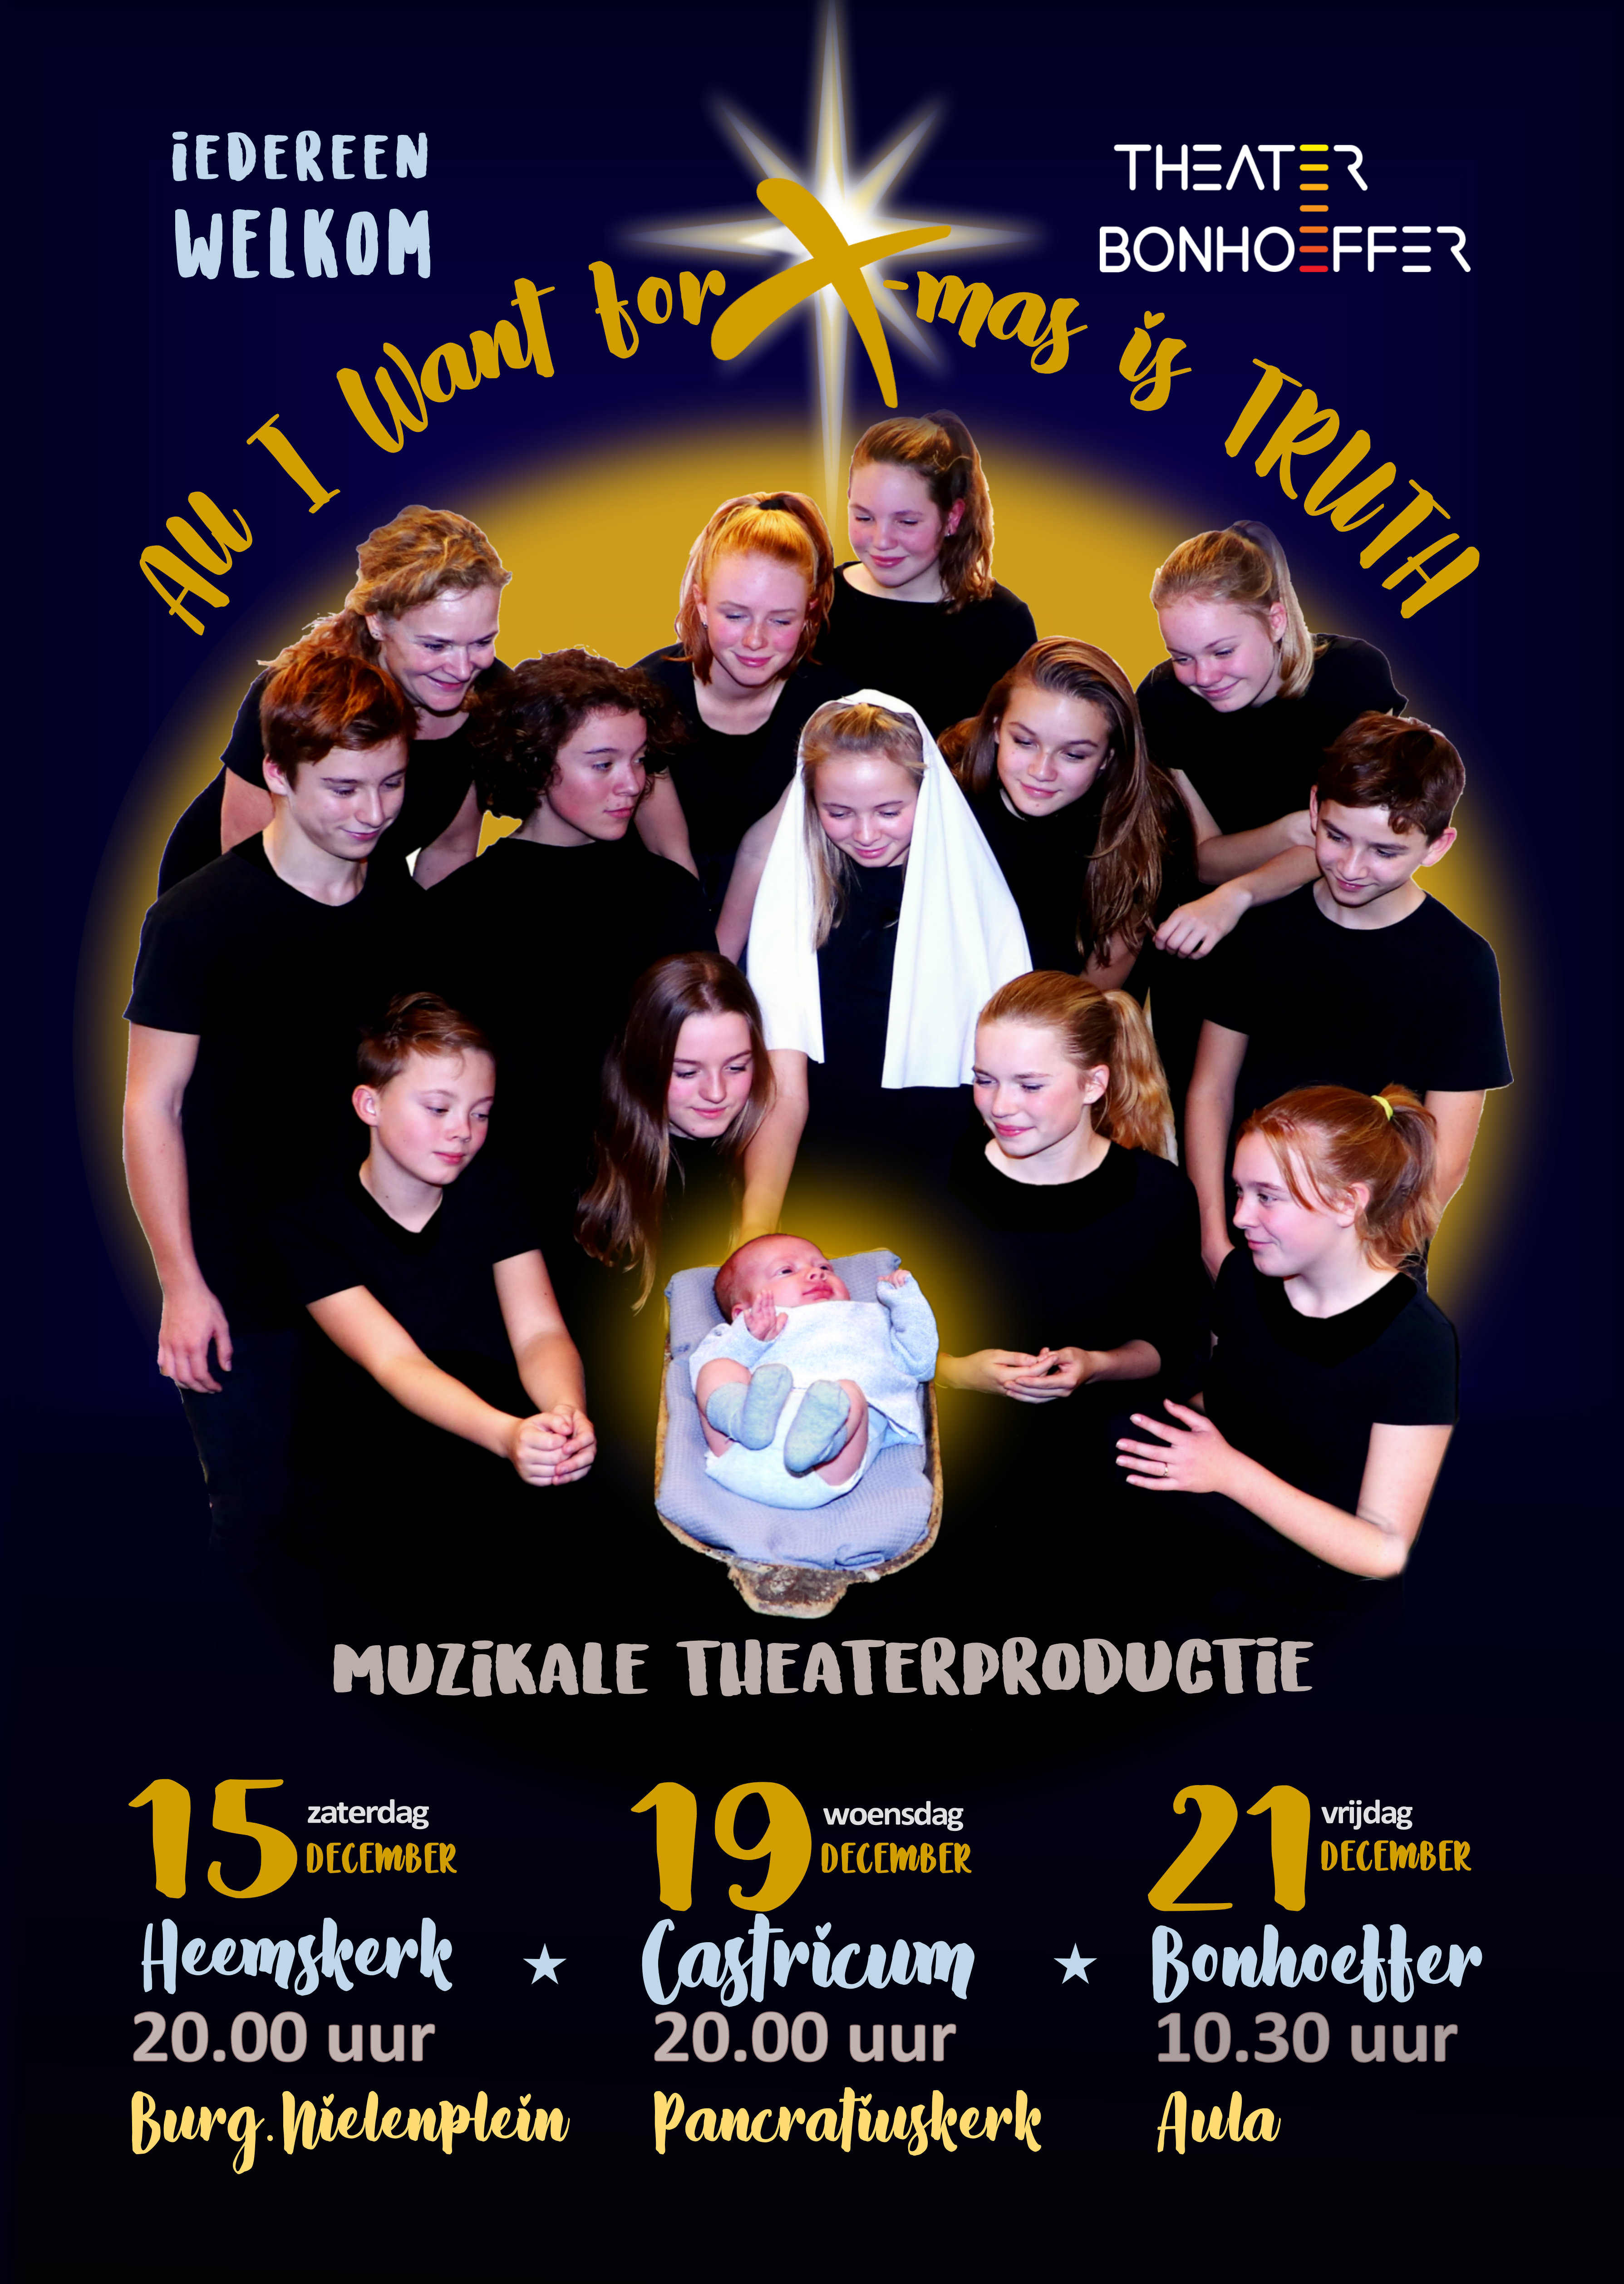 All I Want for X-mas is TRUTH (2018) – Theater Bonhoeffer